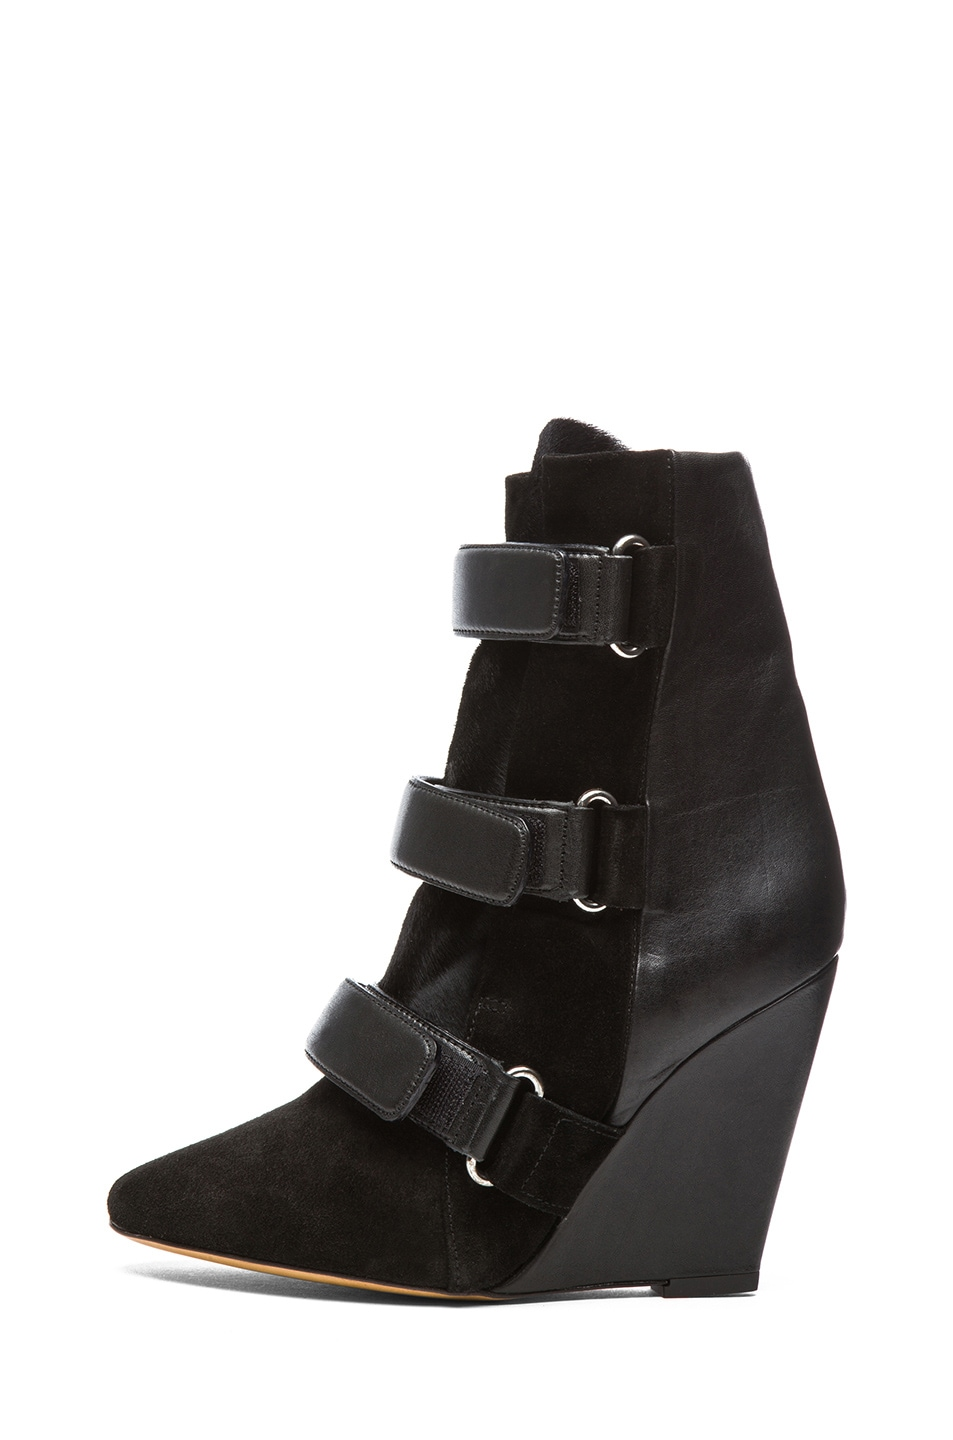 Image 1 of Isabel Marant Scarlet Calfskin Suede Leather Wedge Booties in Black